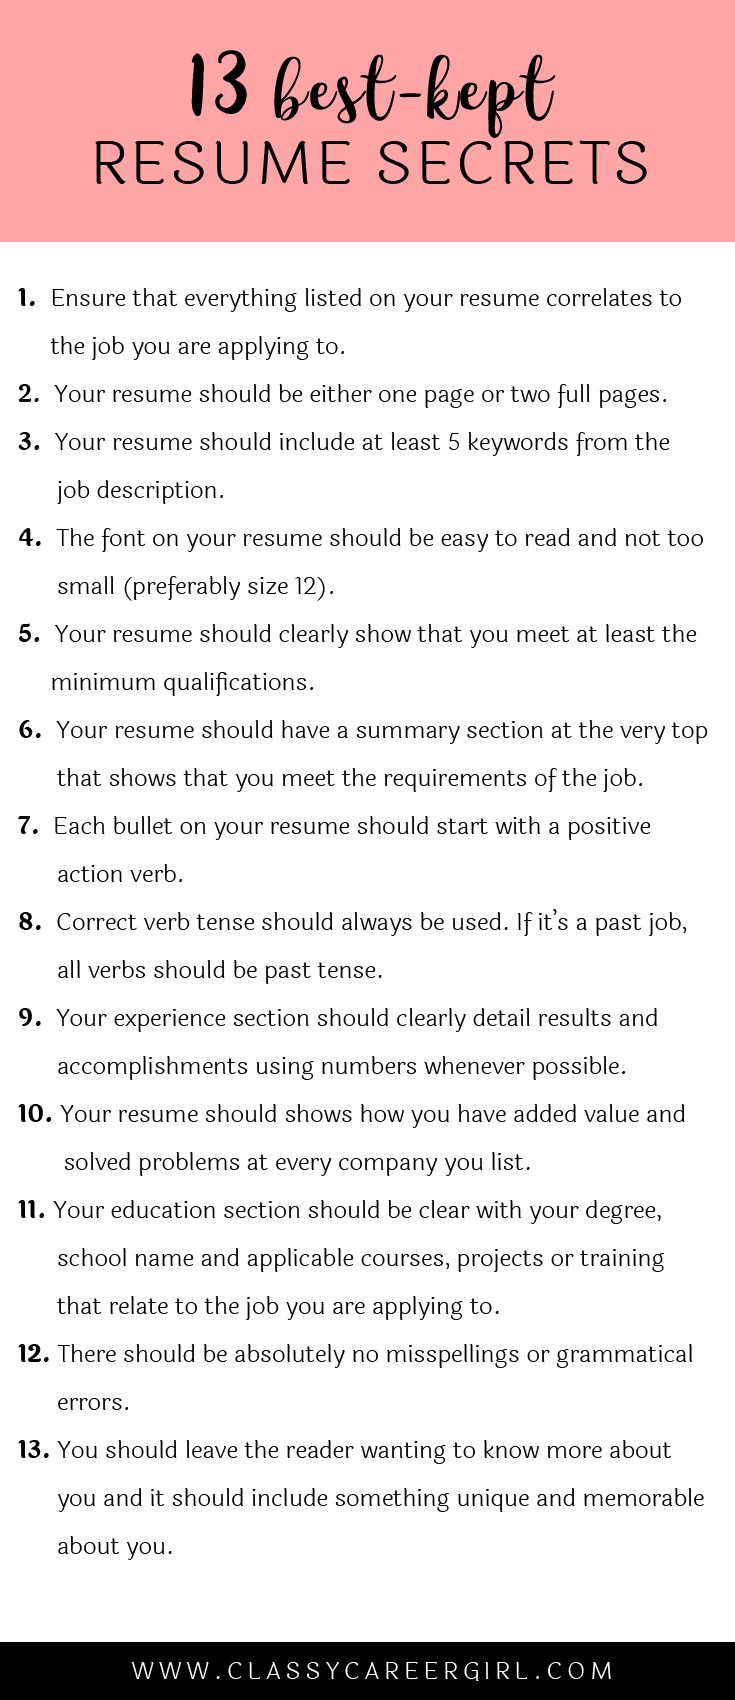 Picnictoimpeachus  Wonderful  Ideas About Resume On Pinterest  Cv Format Resume Cv And  With Exciting Some Hiring Managers Will Toss Your Resume Out If You Dont Know These  With Extraordinary Resume Builder Templates Also How To Create A Resume For Free In Addition Tech Resume And Computer Technician Resume As Well As Relevant Coursework Resume Additionally Resume Now Review From Pinterestcom With Picnictoimpeachus  Exciting  Ideas About Resume On Pinterest  Cv Format Resume Cv And  With Extraordinary Some Hiring Managers Will Toss Your Resume Out If You Dont Know These  And Wonderful Resume Builder Templates Also How To Create A Resume For Free In Addition Tech Resume From Pinterestcom